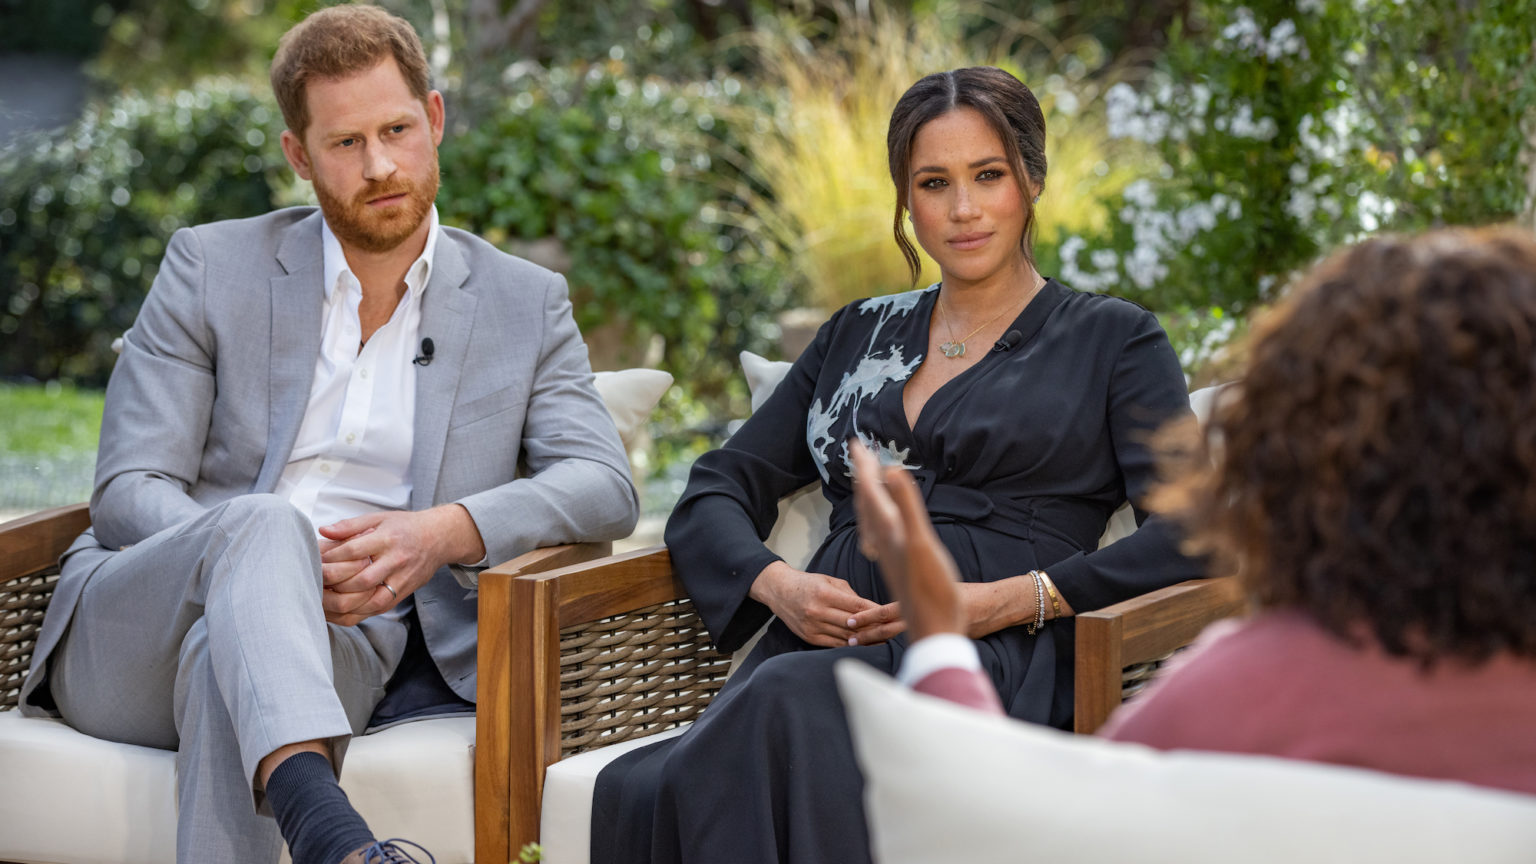 The unbearable victim complex of Meghan Markle